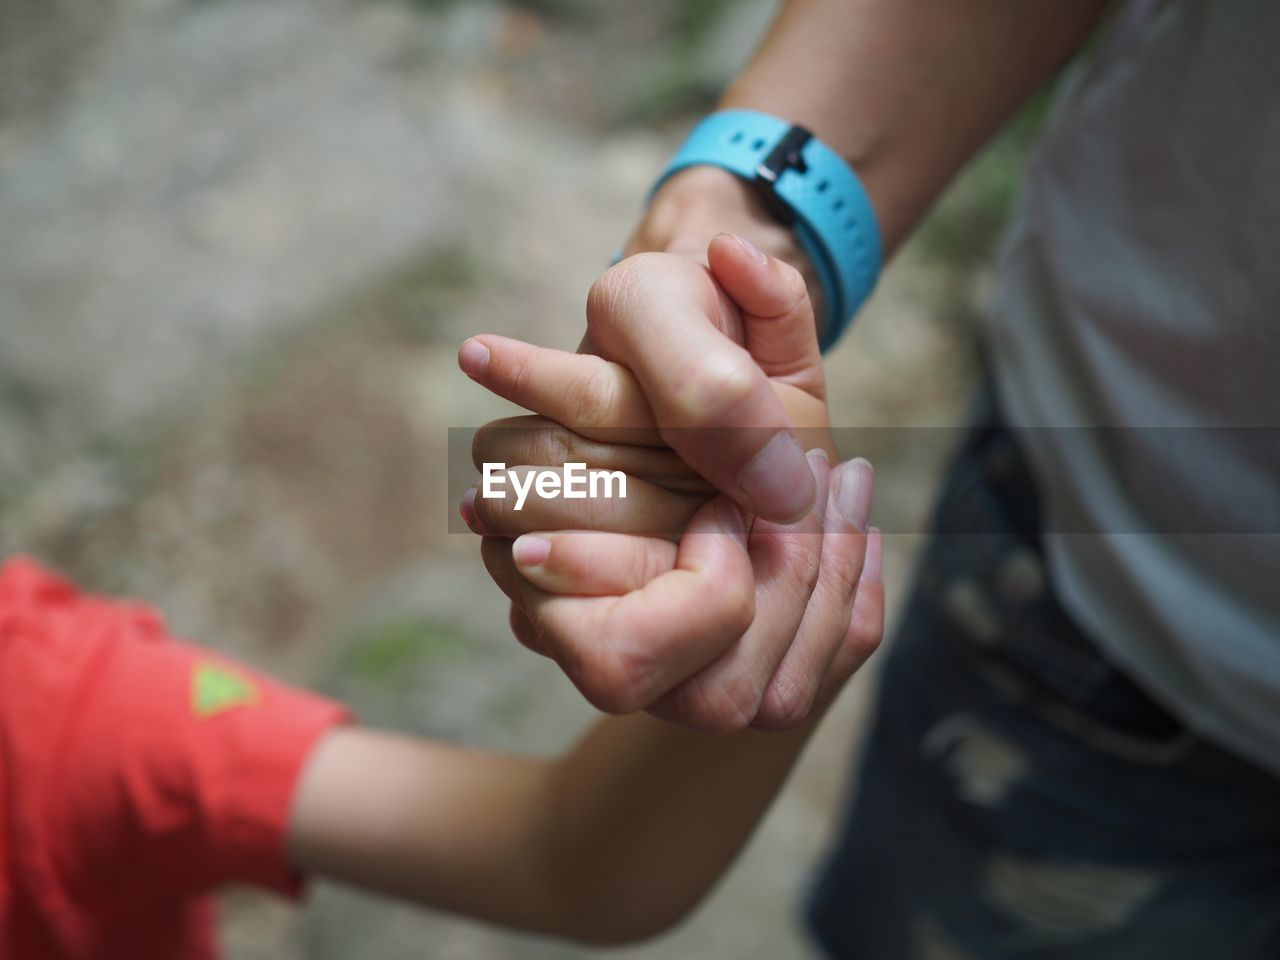 human hand, hand, real people, human body part, child, childhood, people, holding, lifestyles, selective focus, focus on foreground, two people, day, men, finger, human finger, togetherness, boys, midsection, body part, innocence